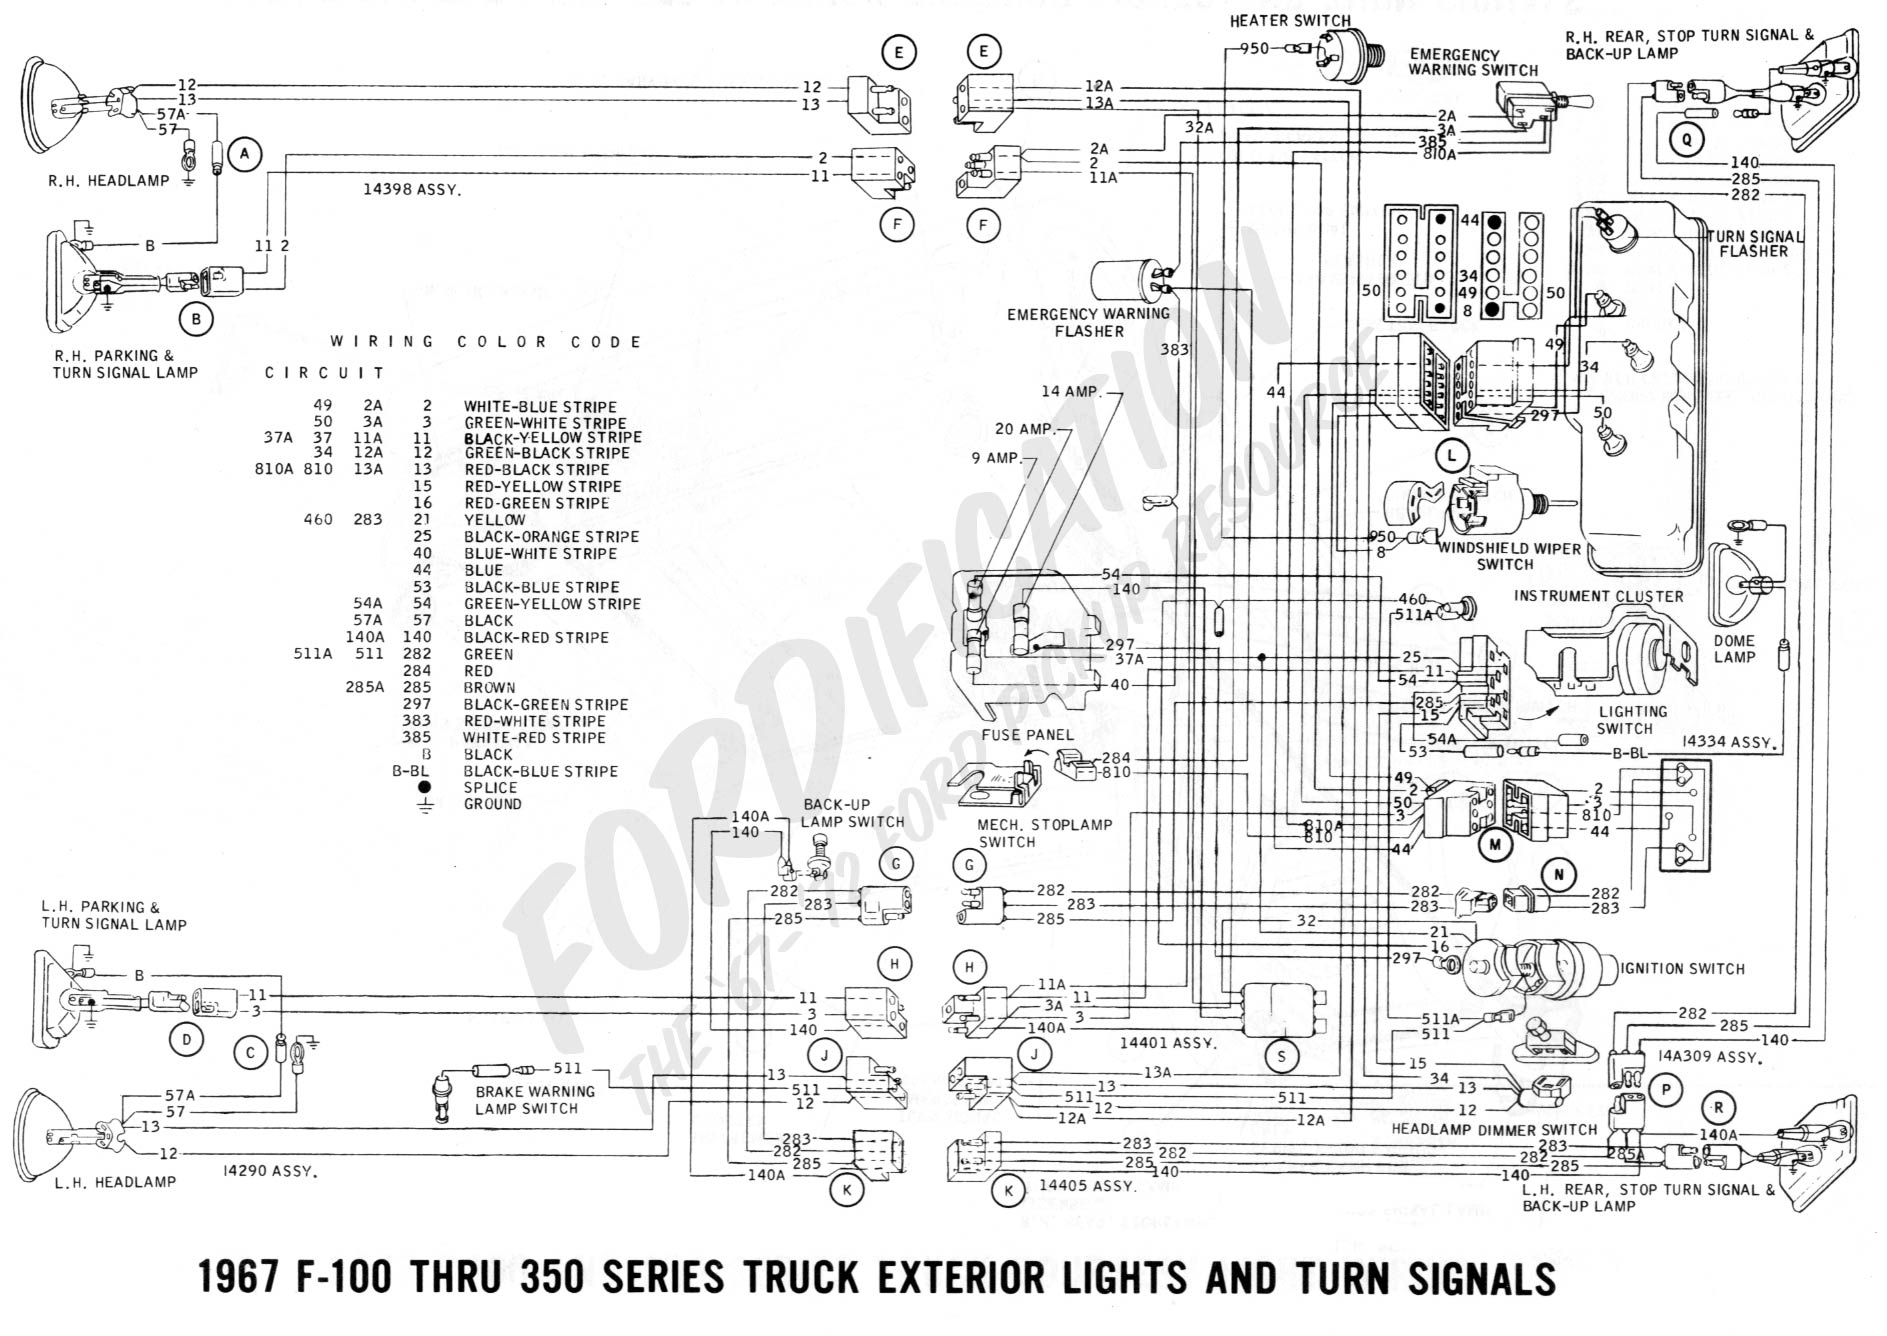 pump fuse box diagram on parts diagram basic car 1989 chevy pickup